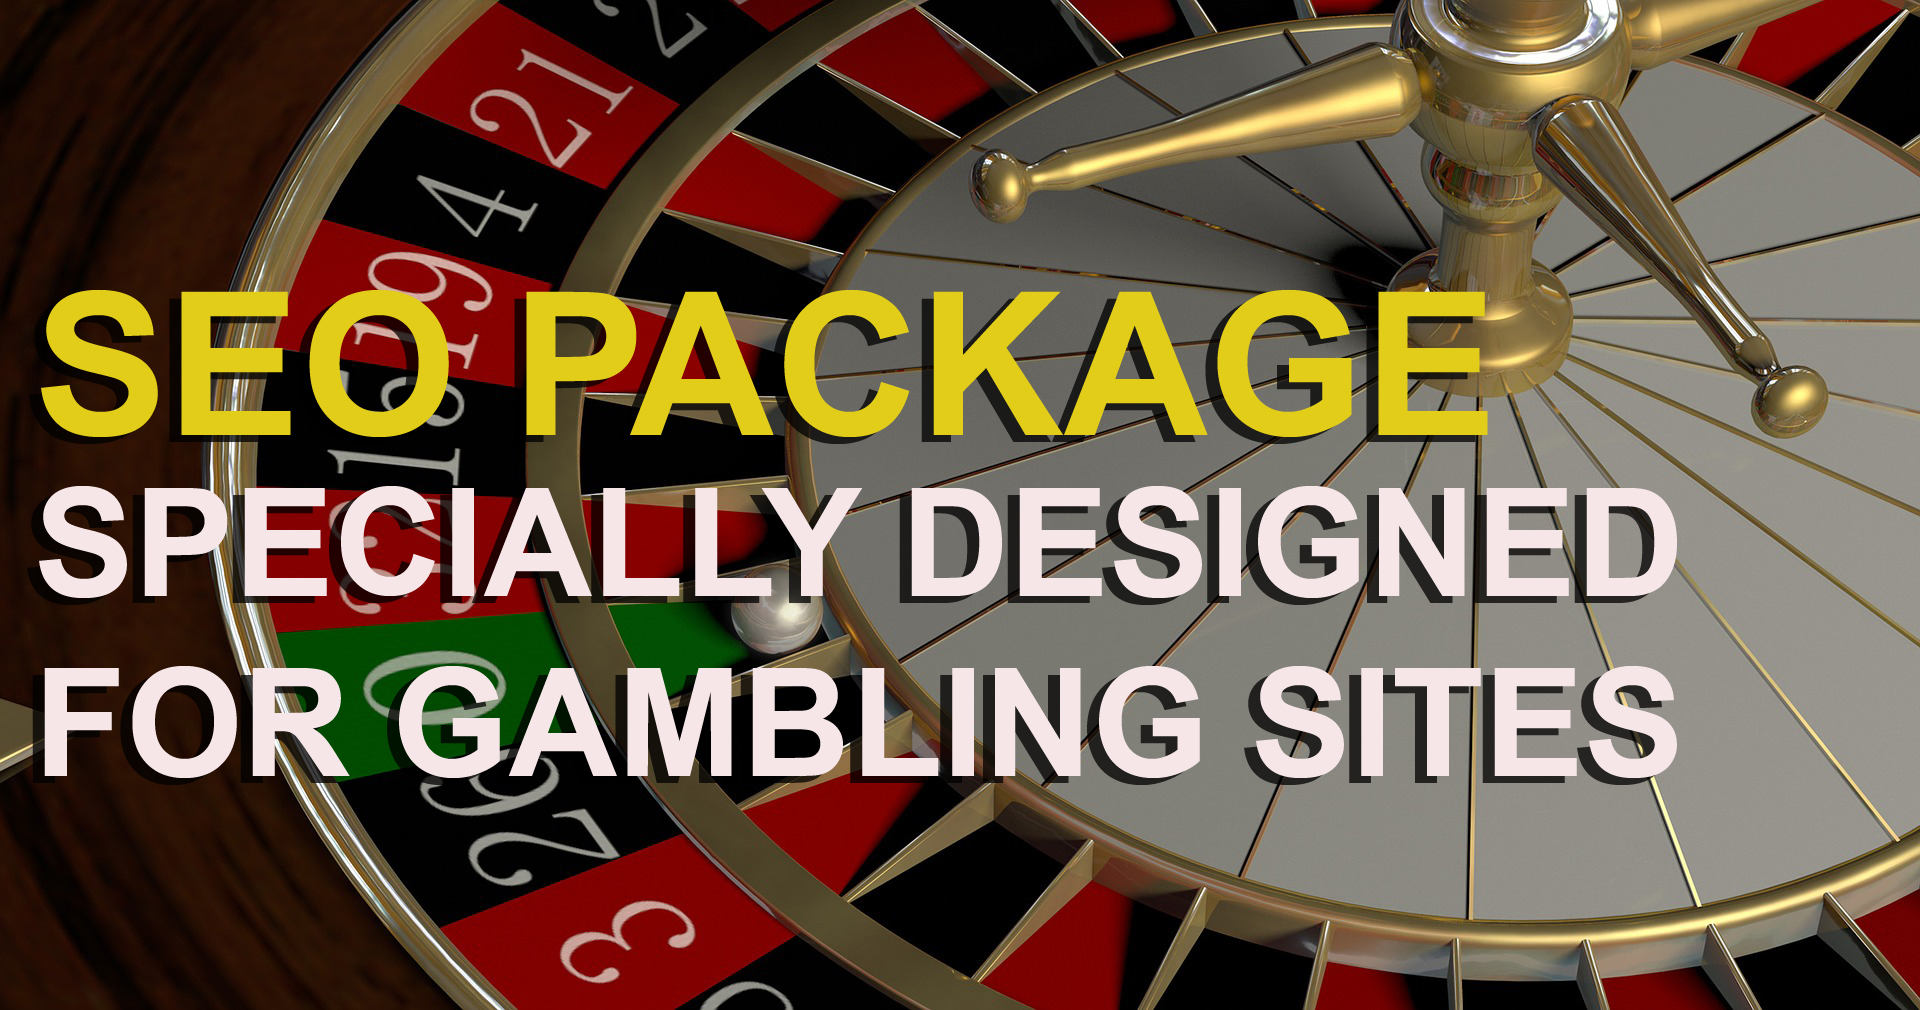 SEO Package Specially Designed For Gambling Sites